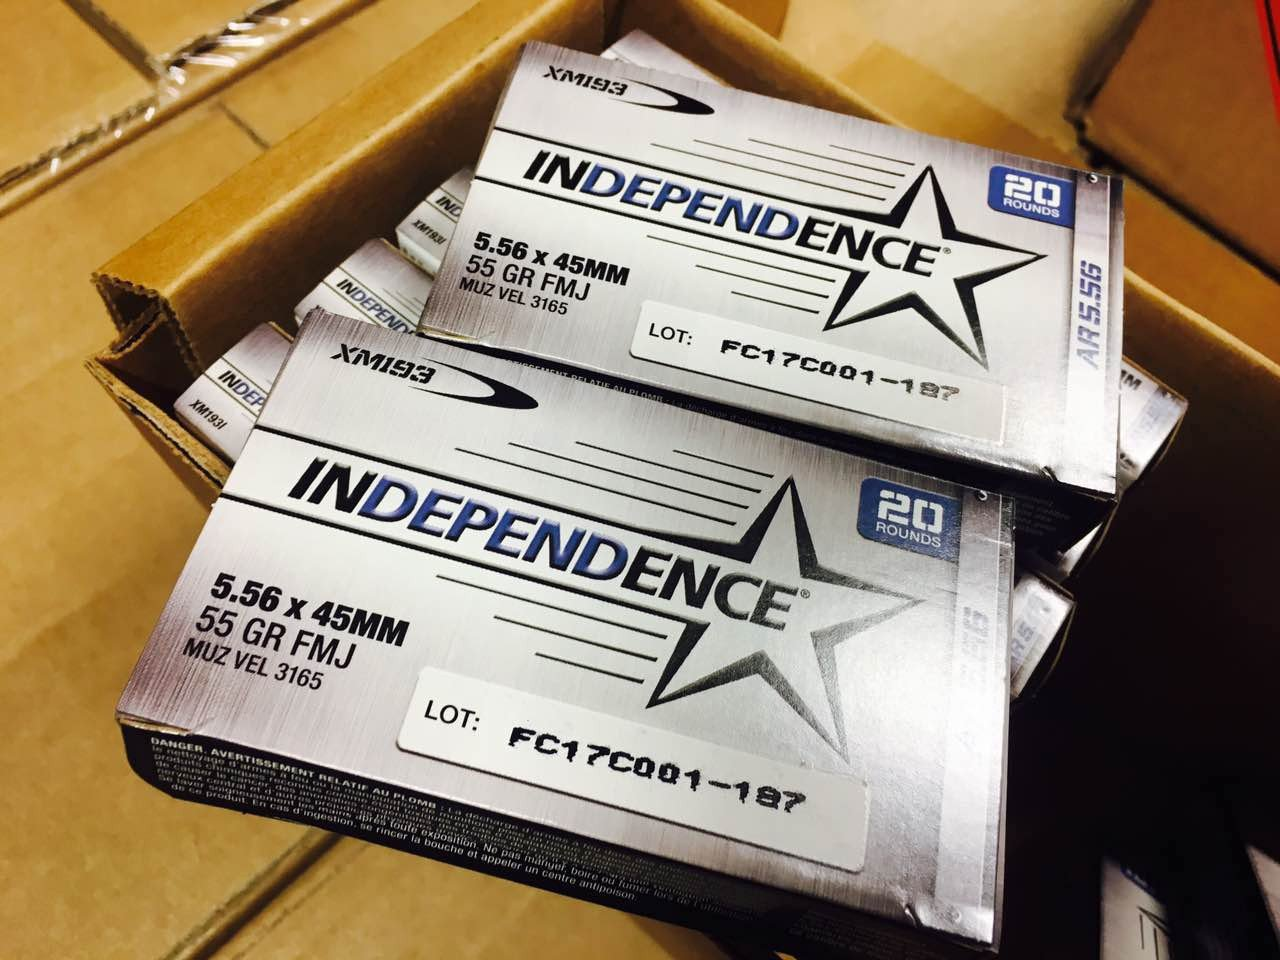 FED XM193 INDEPENDENCE AR 5.56MM NATO 55GR